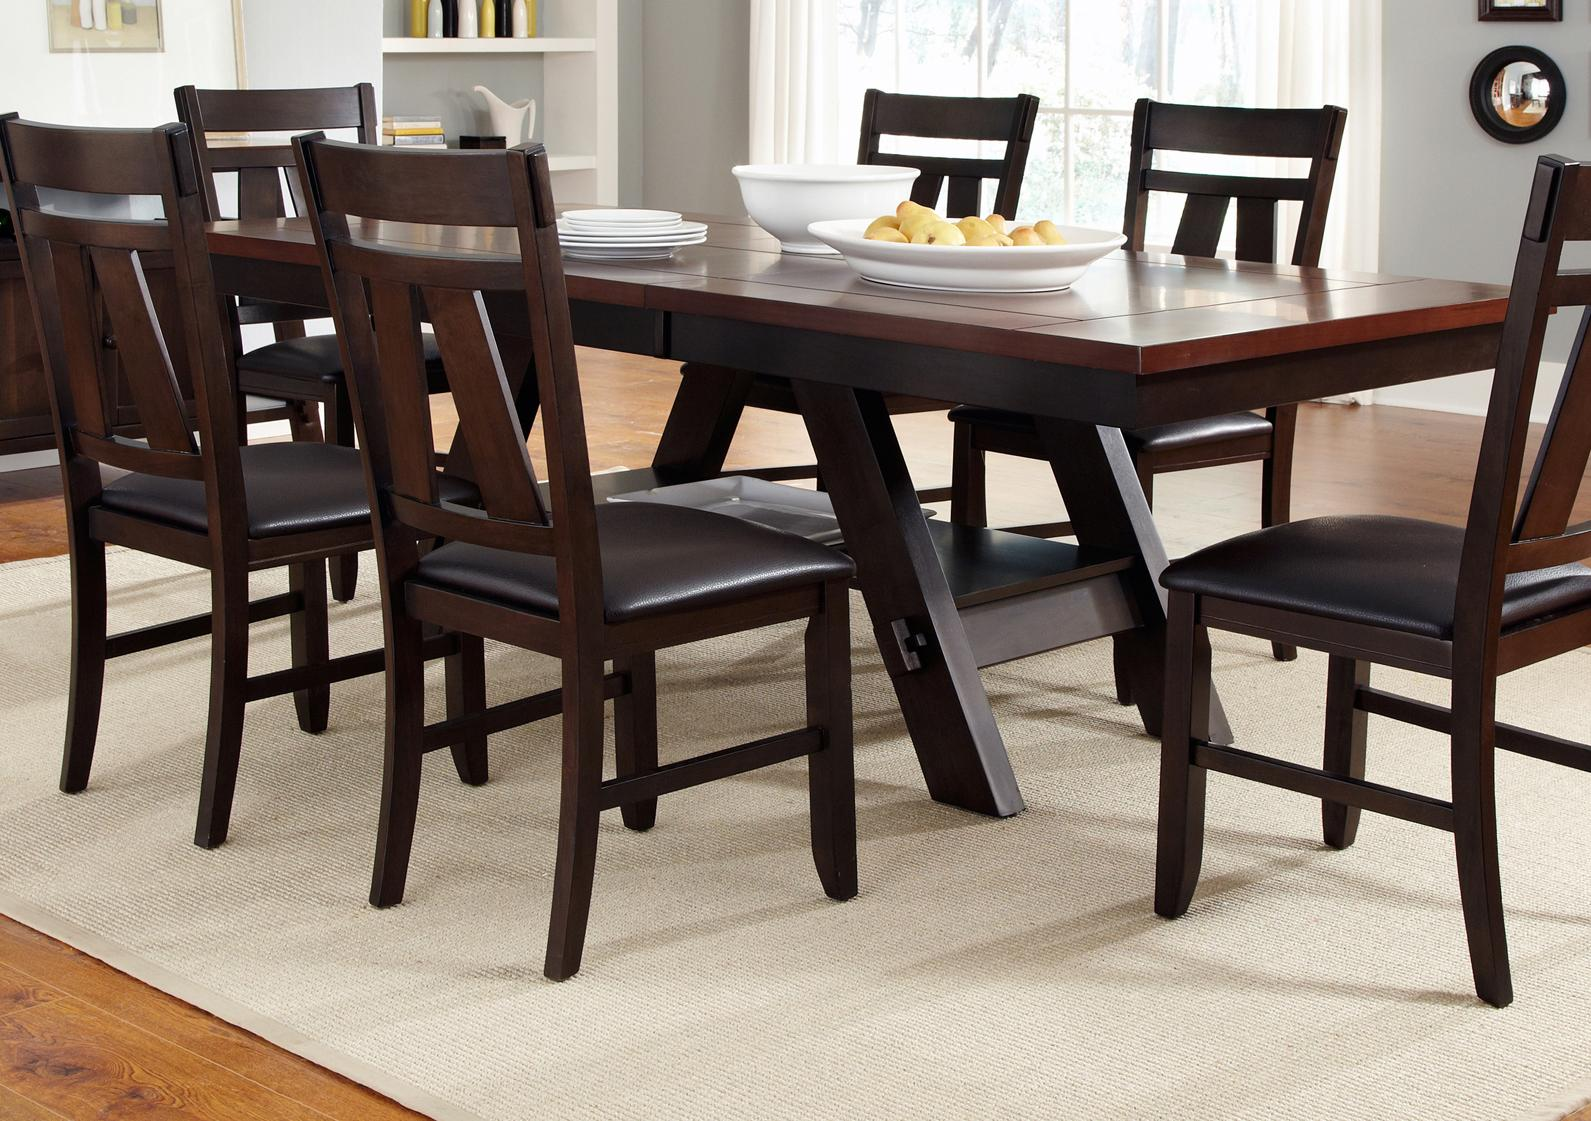 Trestle rectangular dining table by liberty furniture for Rectangle kitchen table with bench